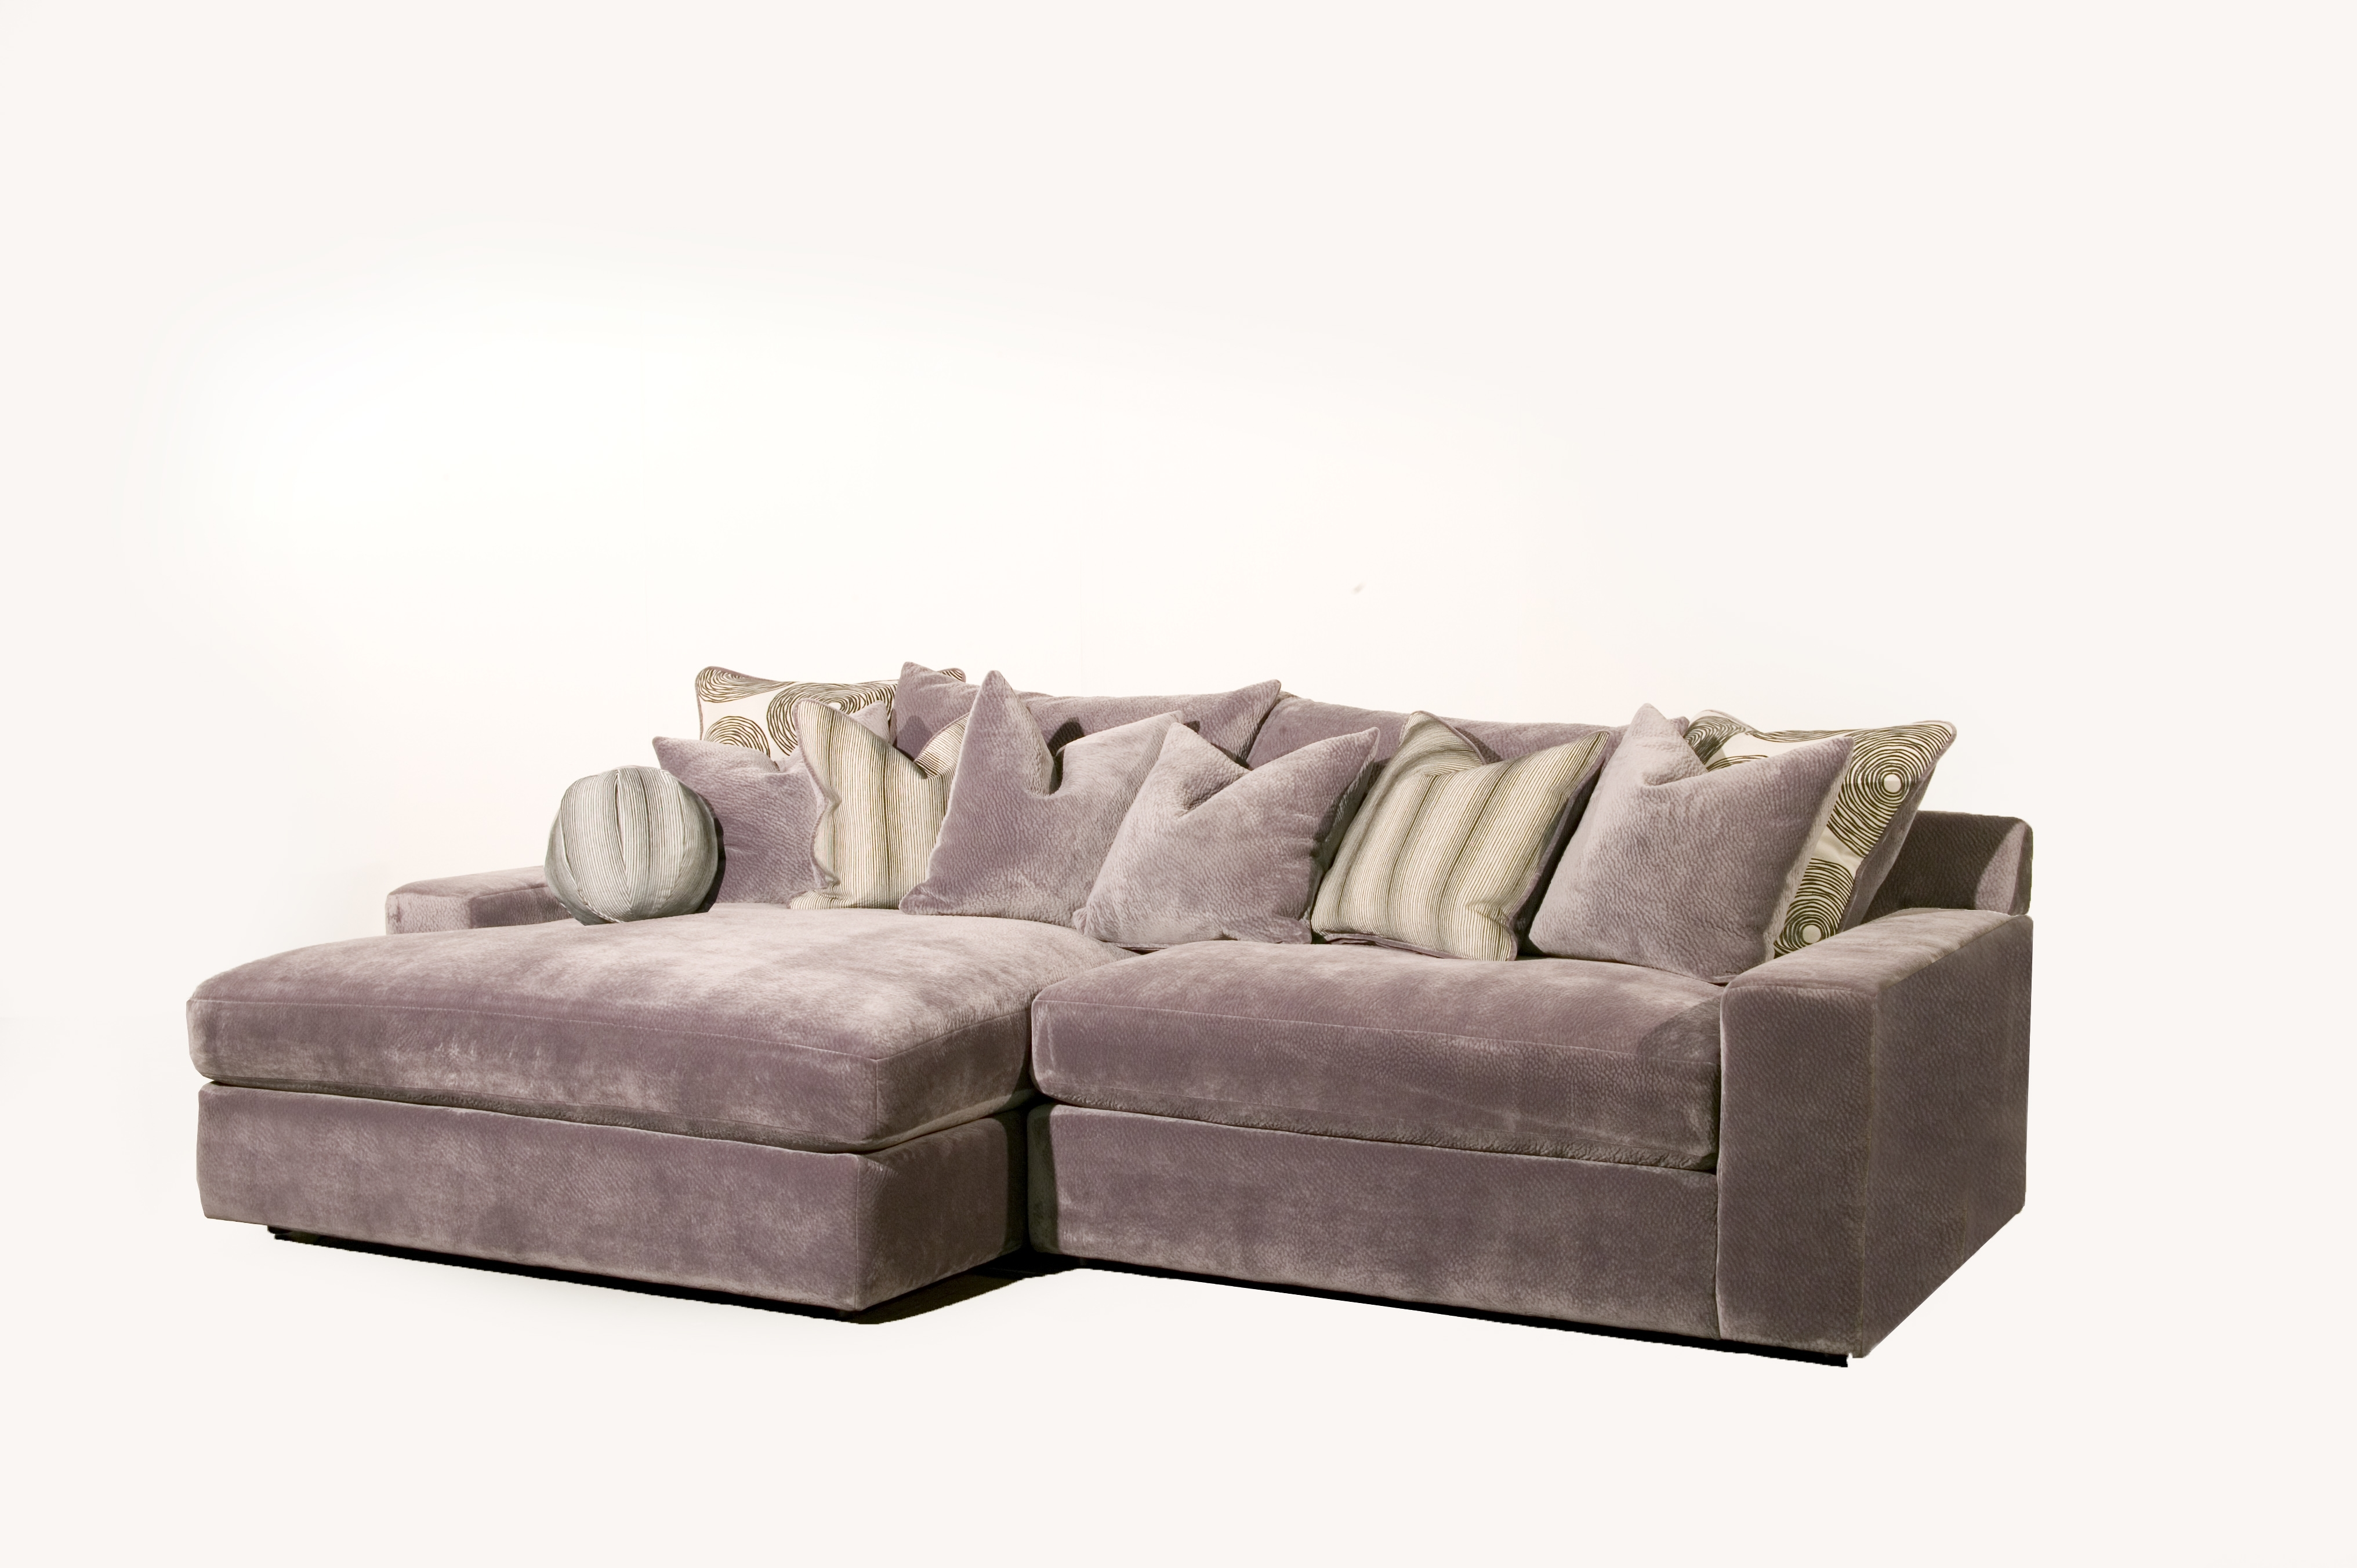 Michael Oasis Sofa Sectionals Regarding Recent Phoenix Arizona Sectional Sofas (View 16 of 20)